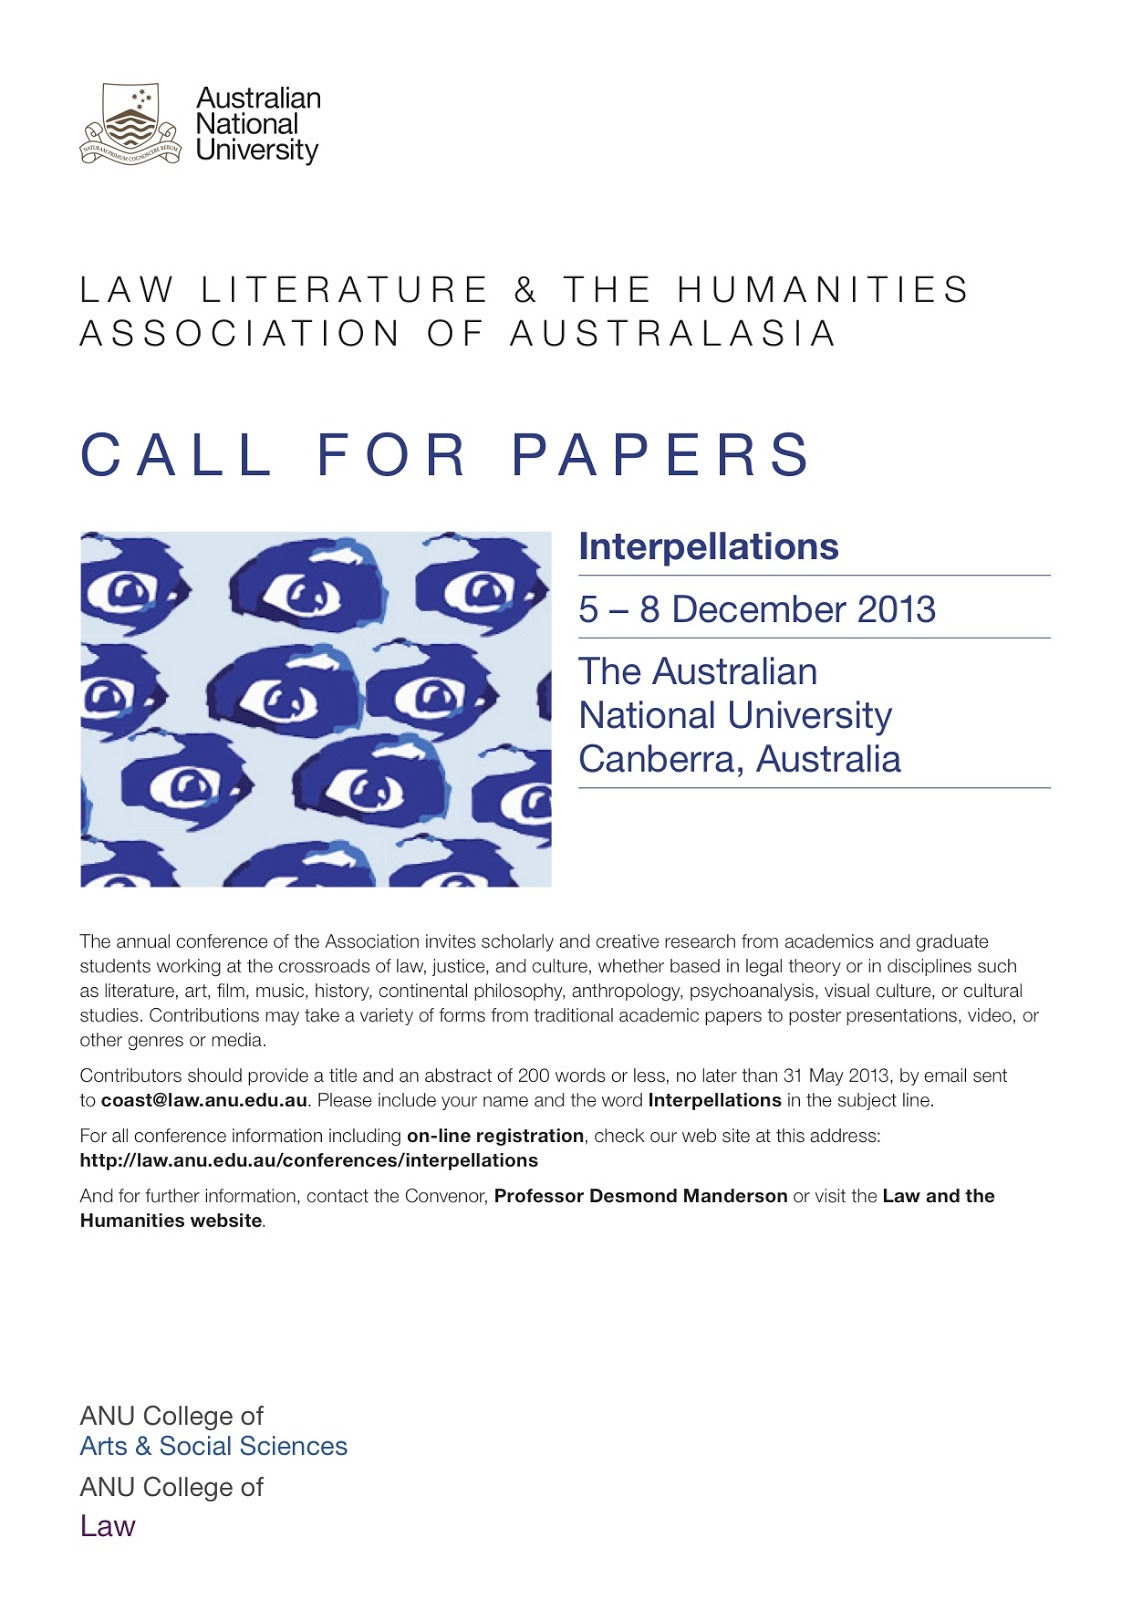 Call for Papers: Indian Journal of Legal Research; Submit by 30th